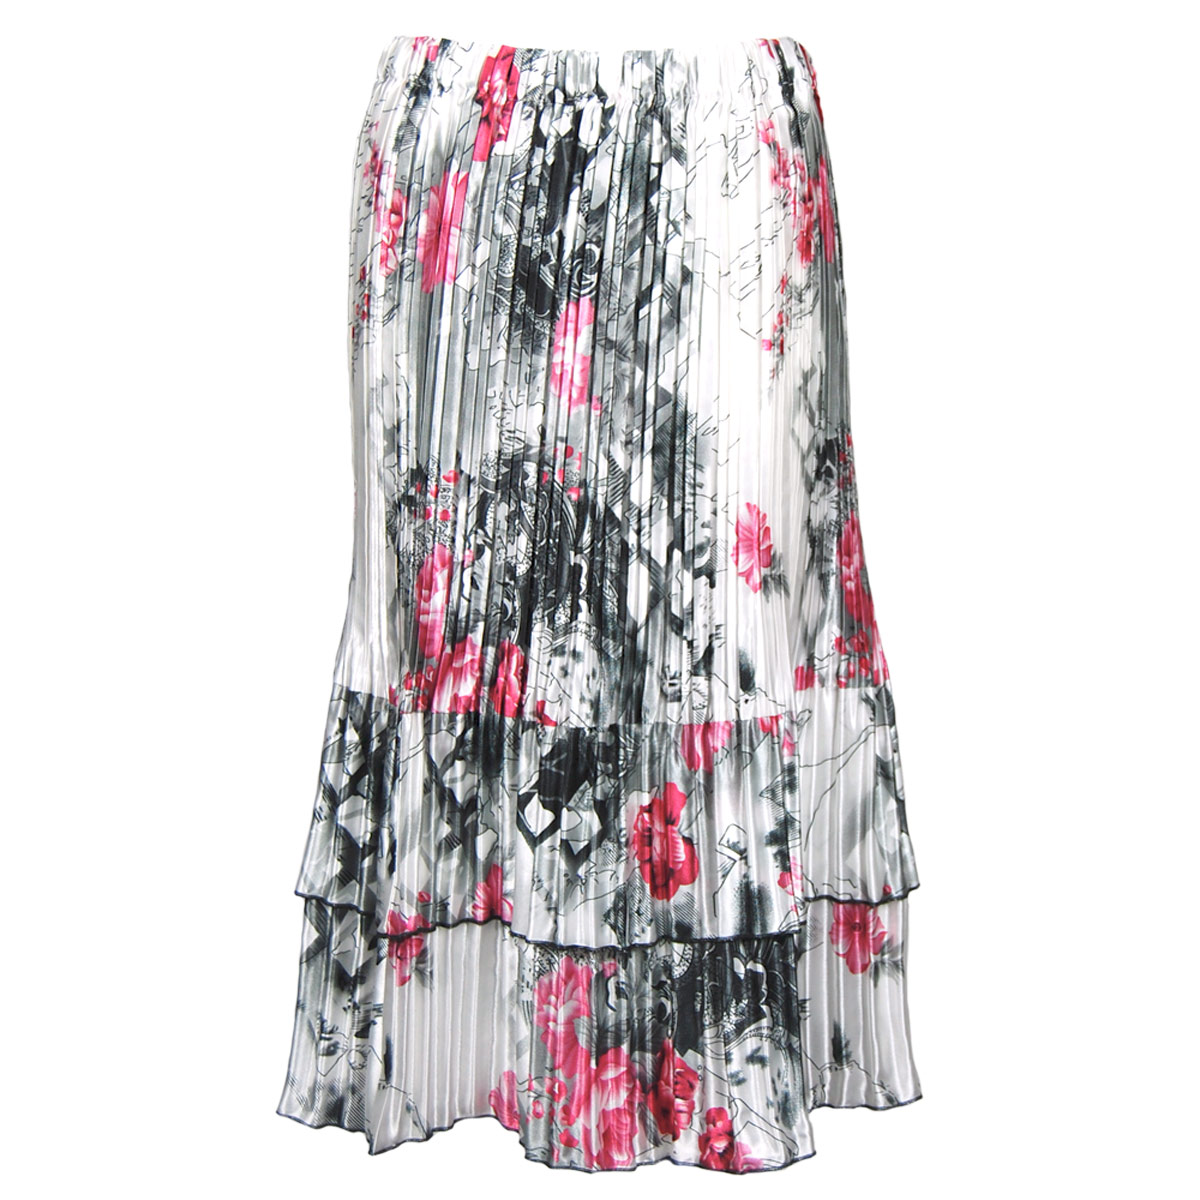 Wholesale Satin Mini Pleats - Half Sleeve V-Neck  White-Black-Pink Floral - One Size (S-XL)